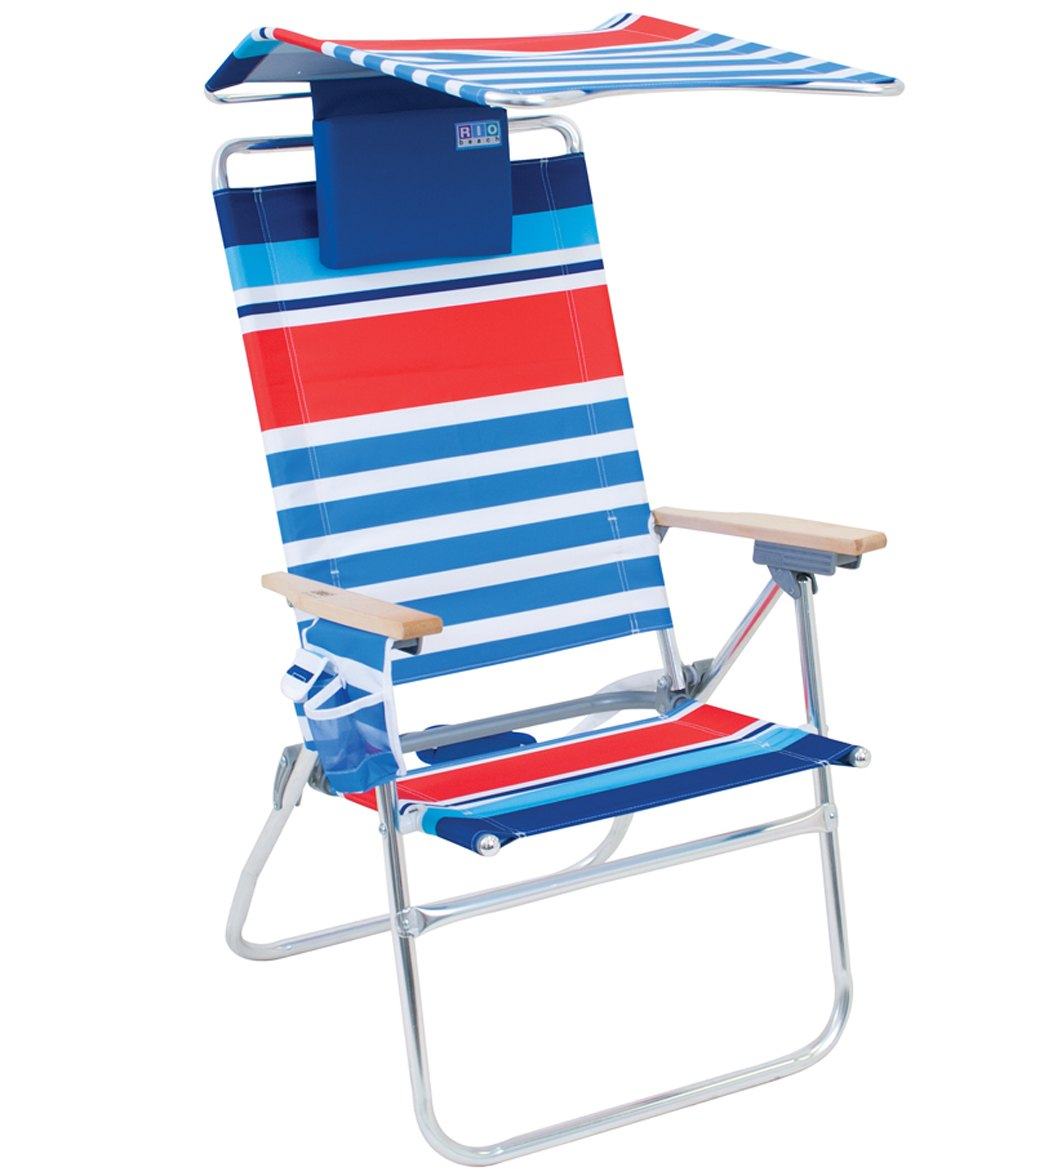 Rio Brands Hi-Boy Aluminum Beach Chair With Canopy And Pillow at SwimOutlet.com - Free Shipping  sc 1 st  SwimOutlet.com & Rio Brands Hi-Boy Aluminum Beach Chair With Canopy And Pillow at ...